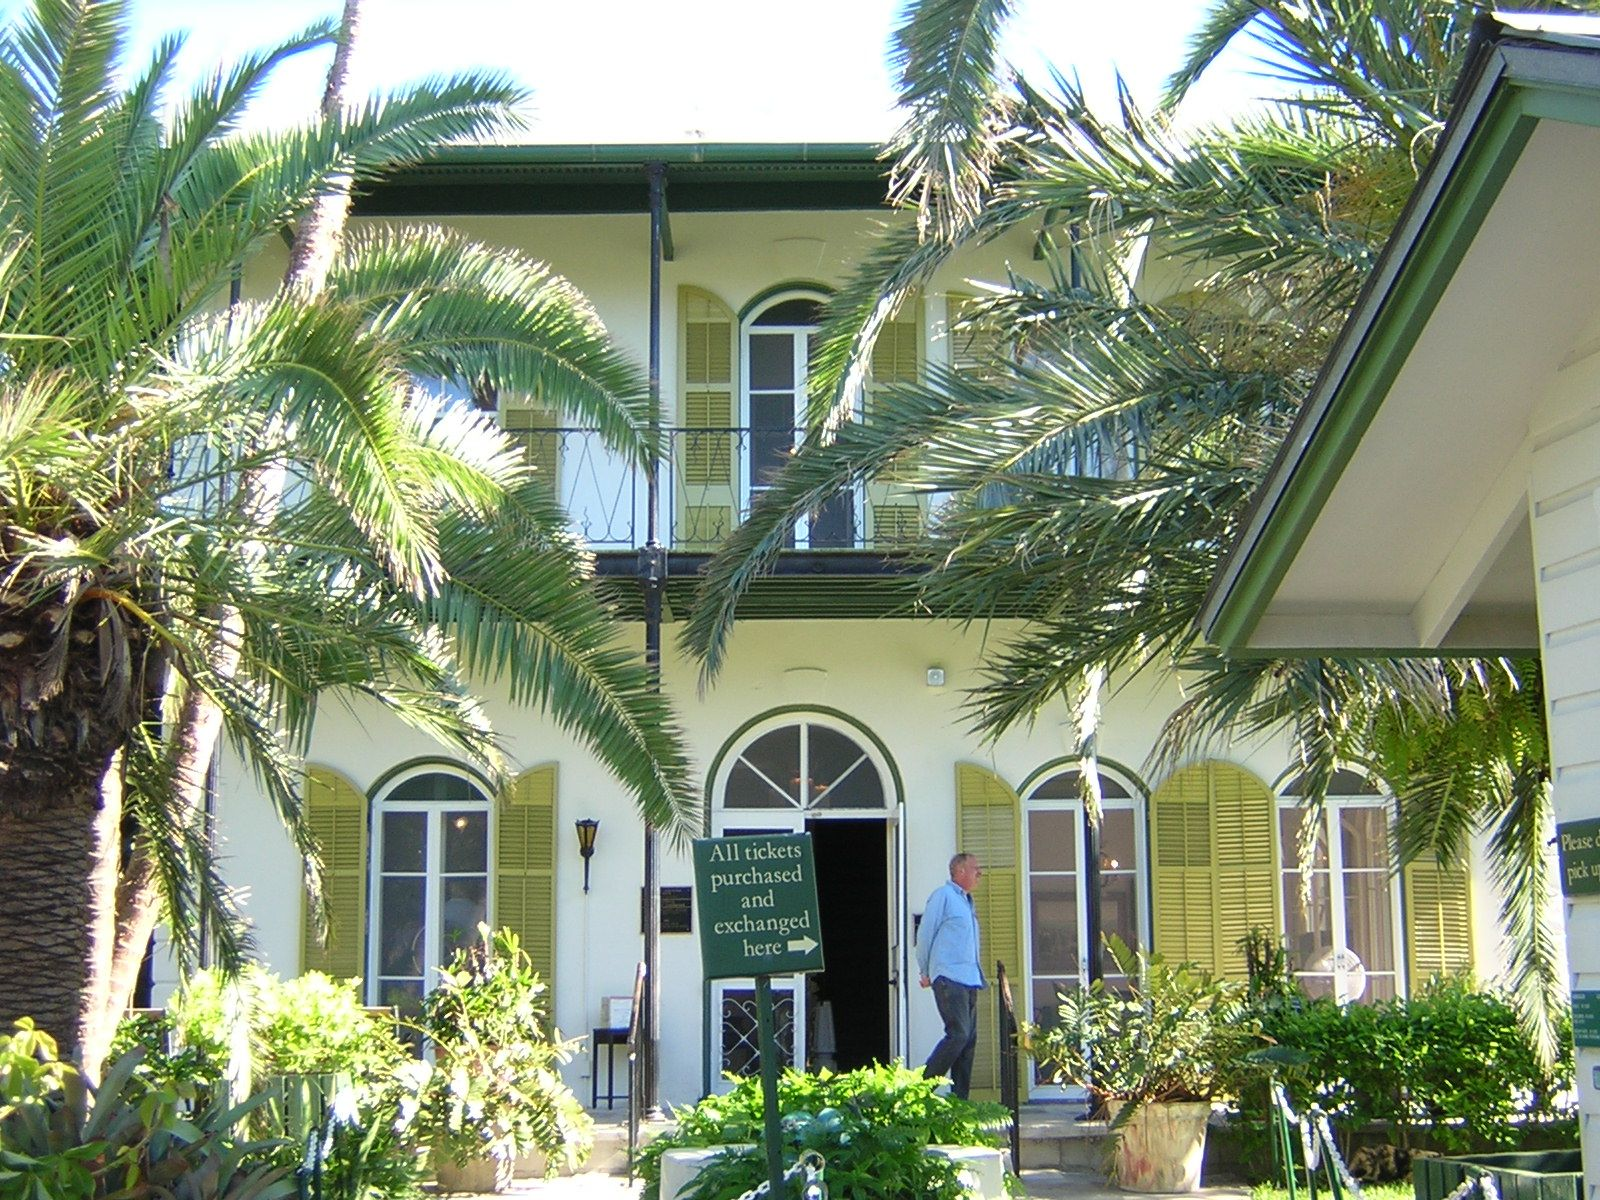 THE BIG CARNIVAL In Key West the Hemingway Home Battles the Feds over Cats